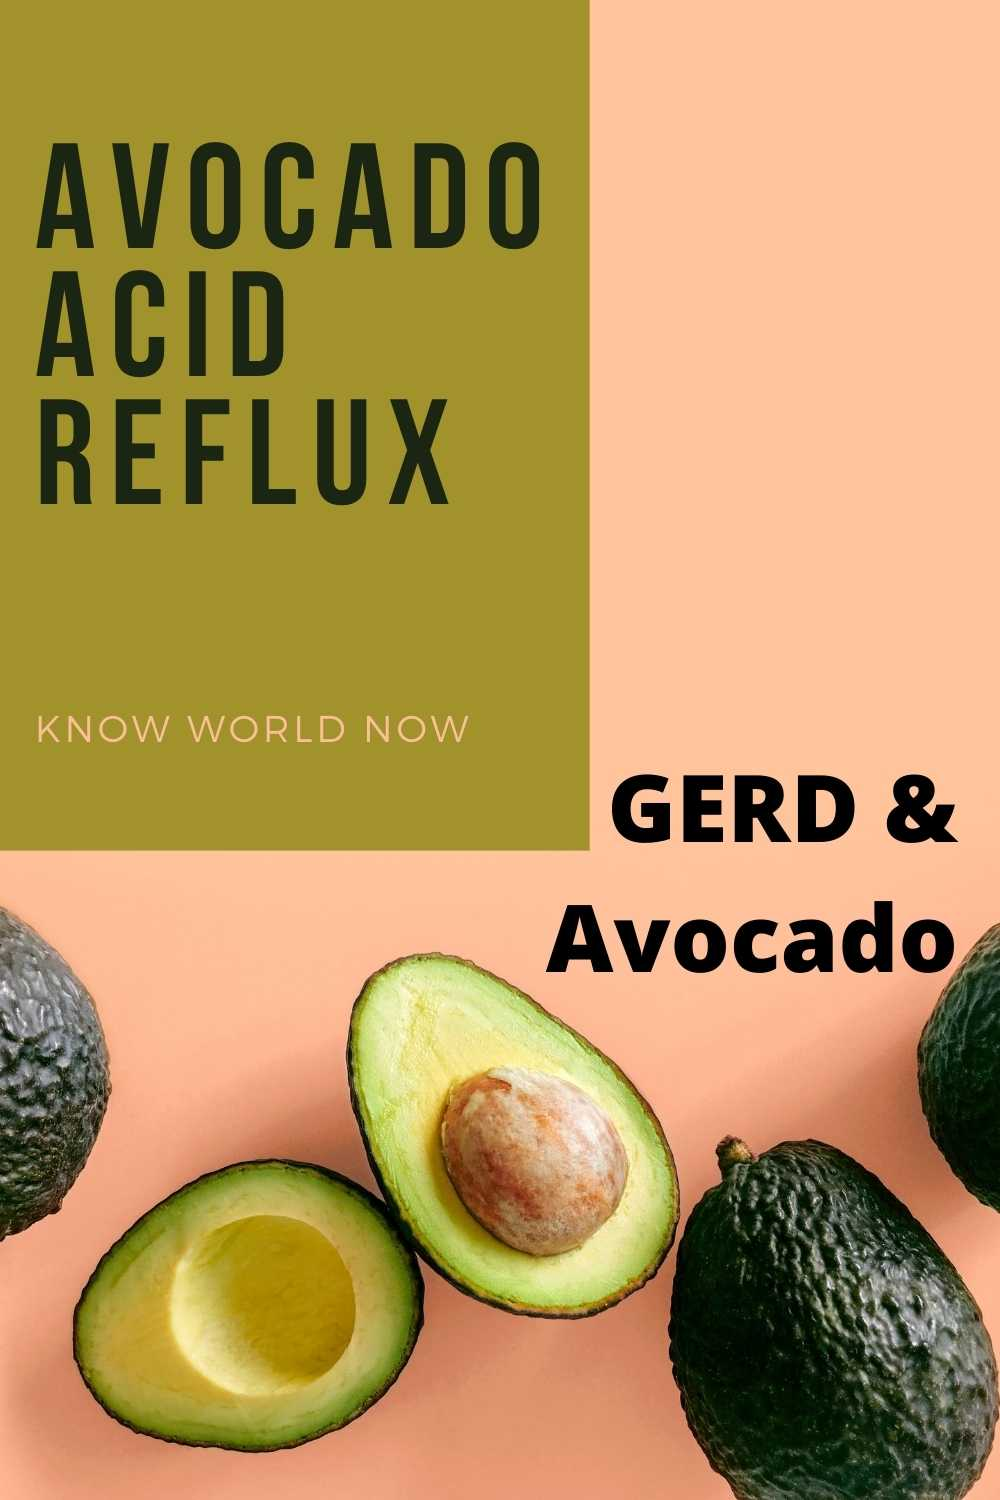 Avocado and GERD